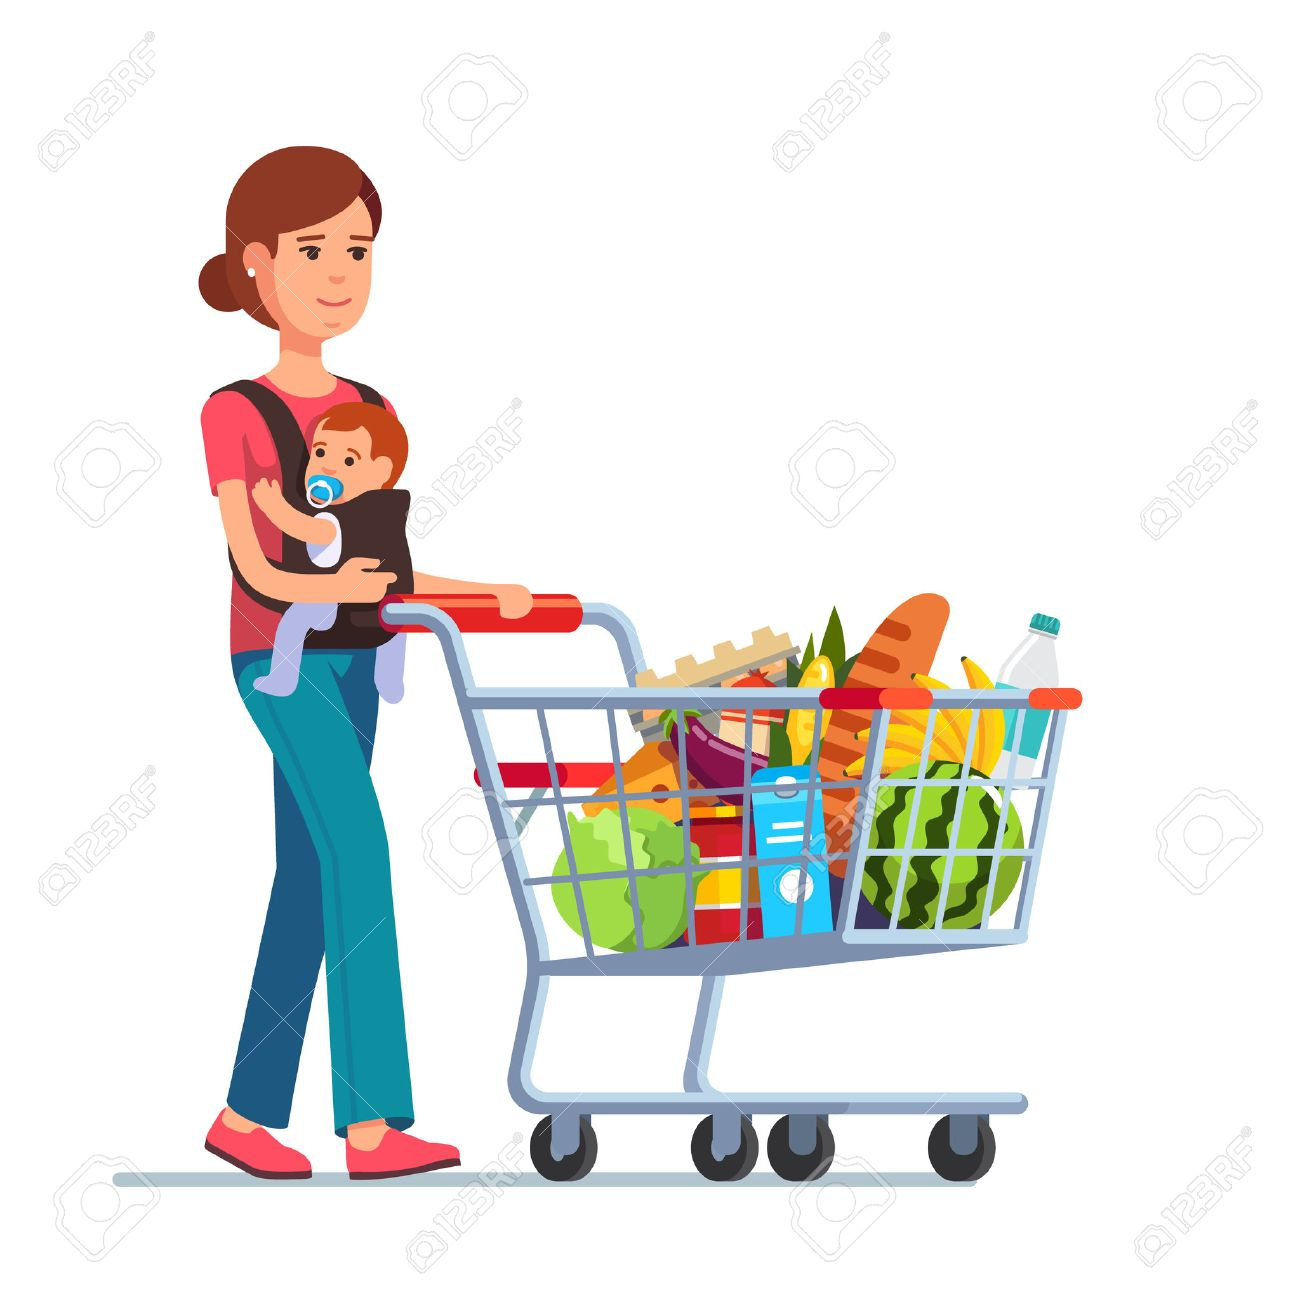 Young mother with son baby toddler in a sling pushing supermarket shopping cart full of groceries. Flat style vector illustration isolated on white background. Foto de archivo - 54217159